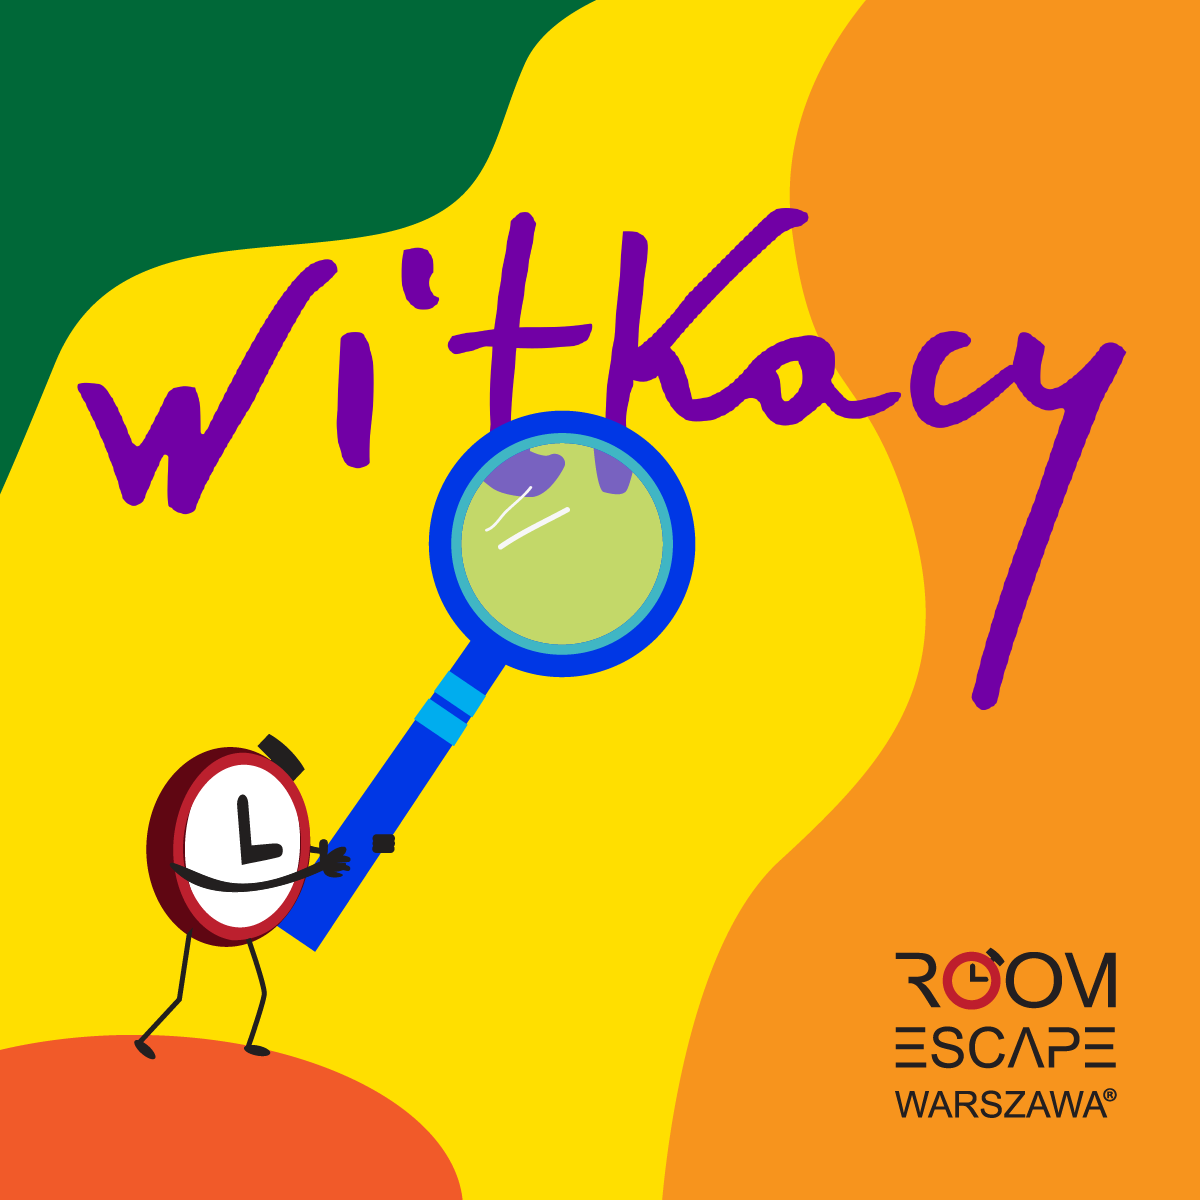 Escape Room Witkacy